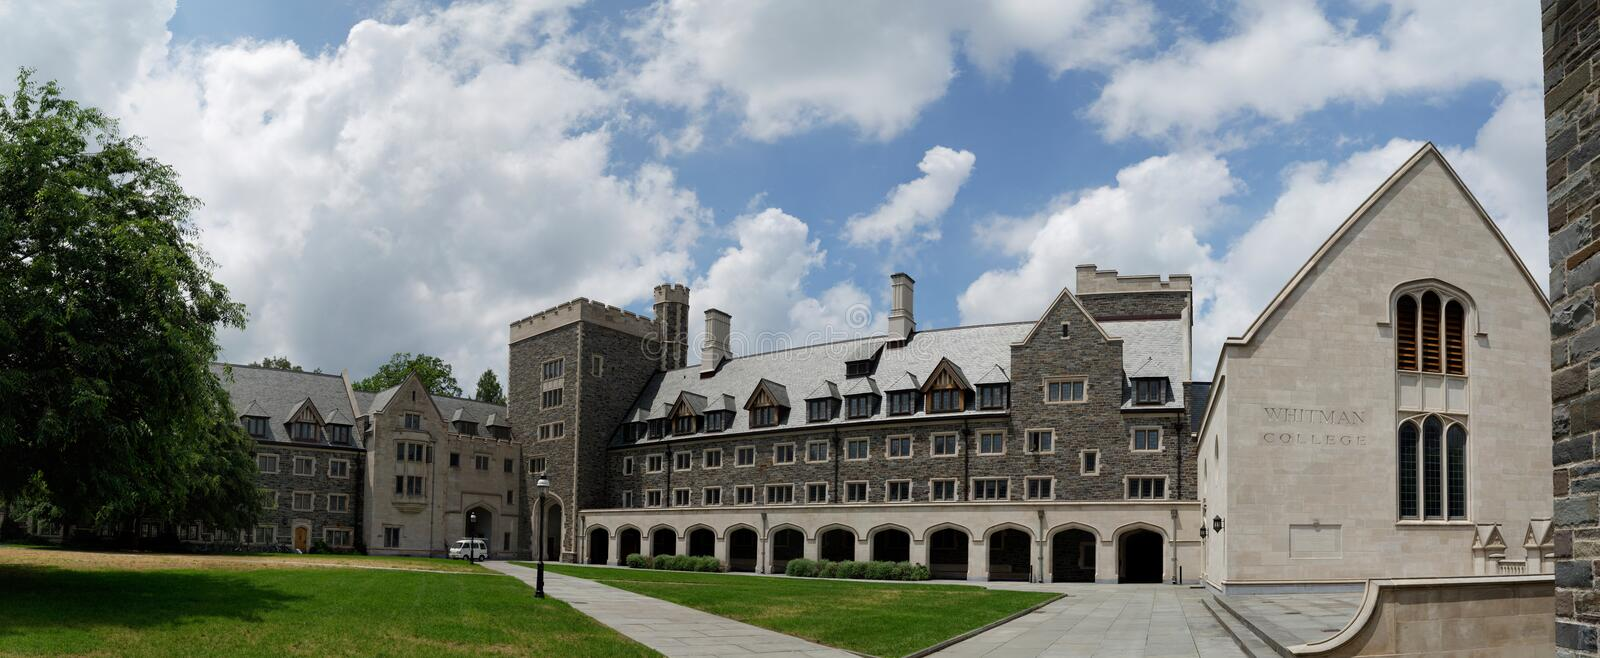 Princeton University, USA. Princeton University Campus, neogothic style buildings constructed of limestone. New Jersey, USA royalty free stock image